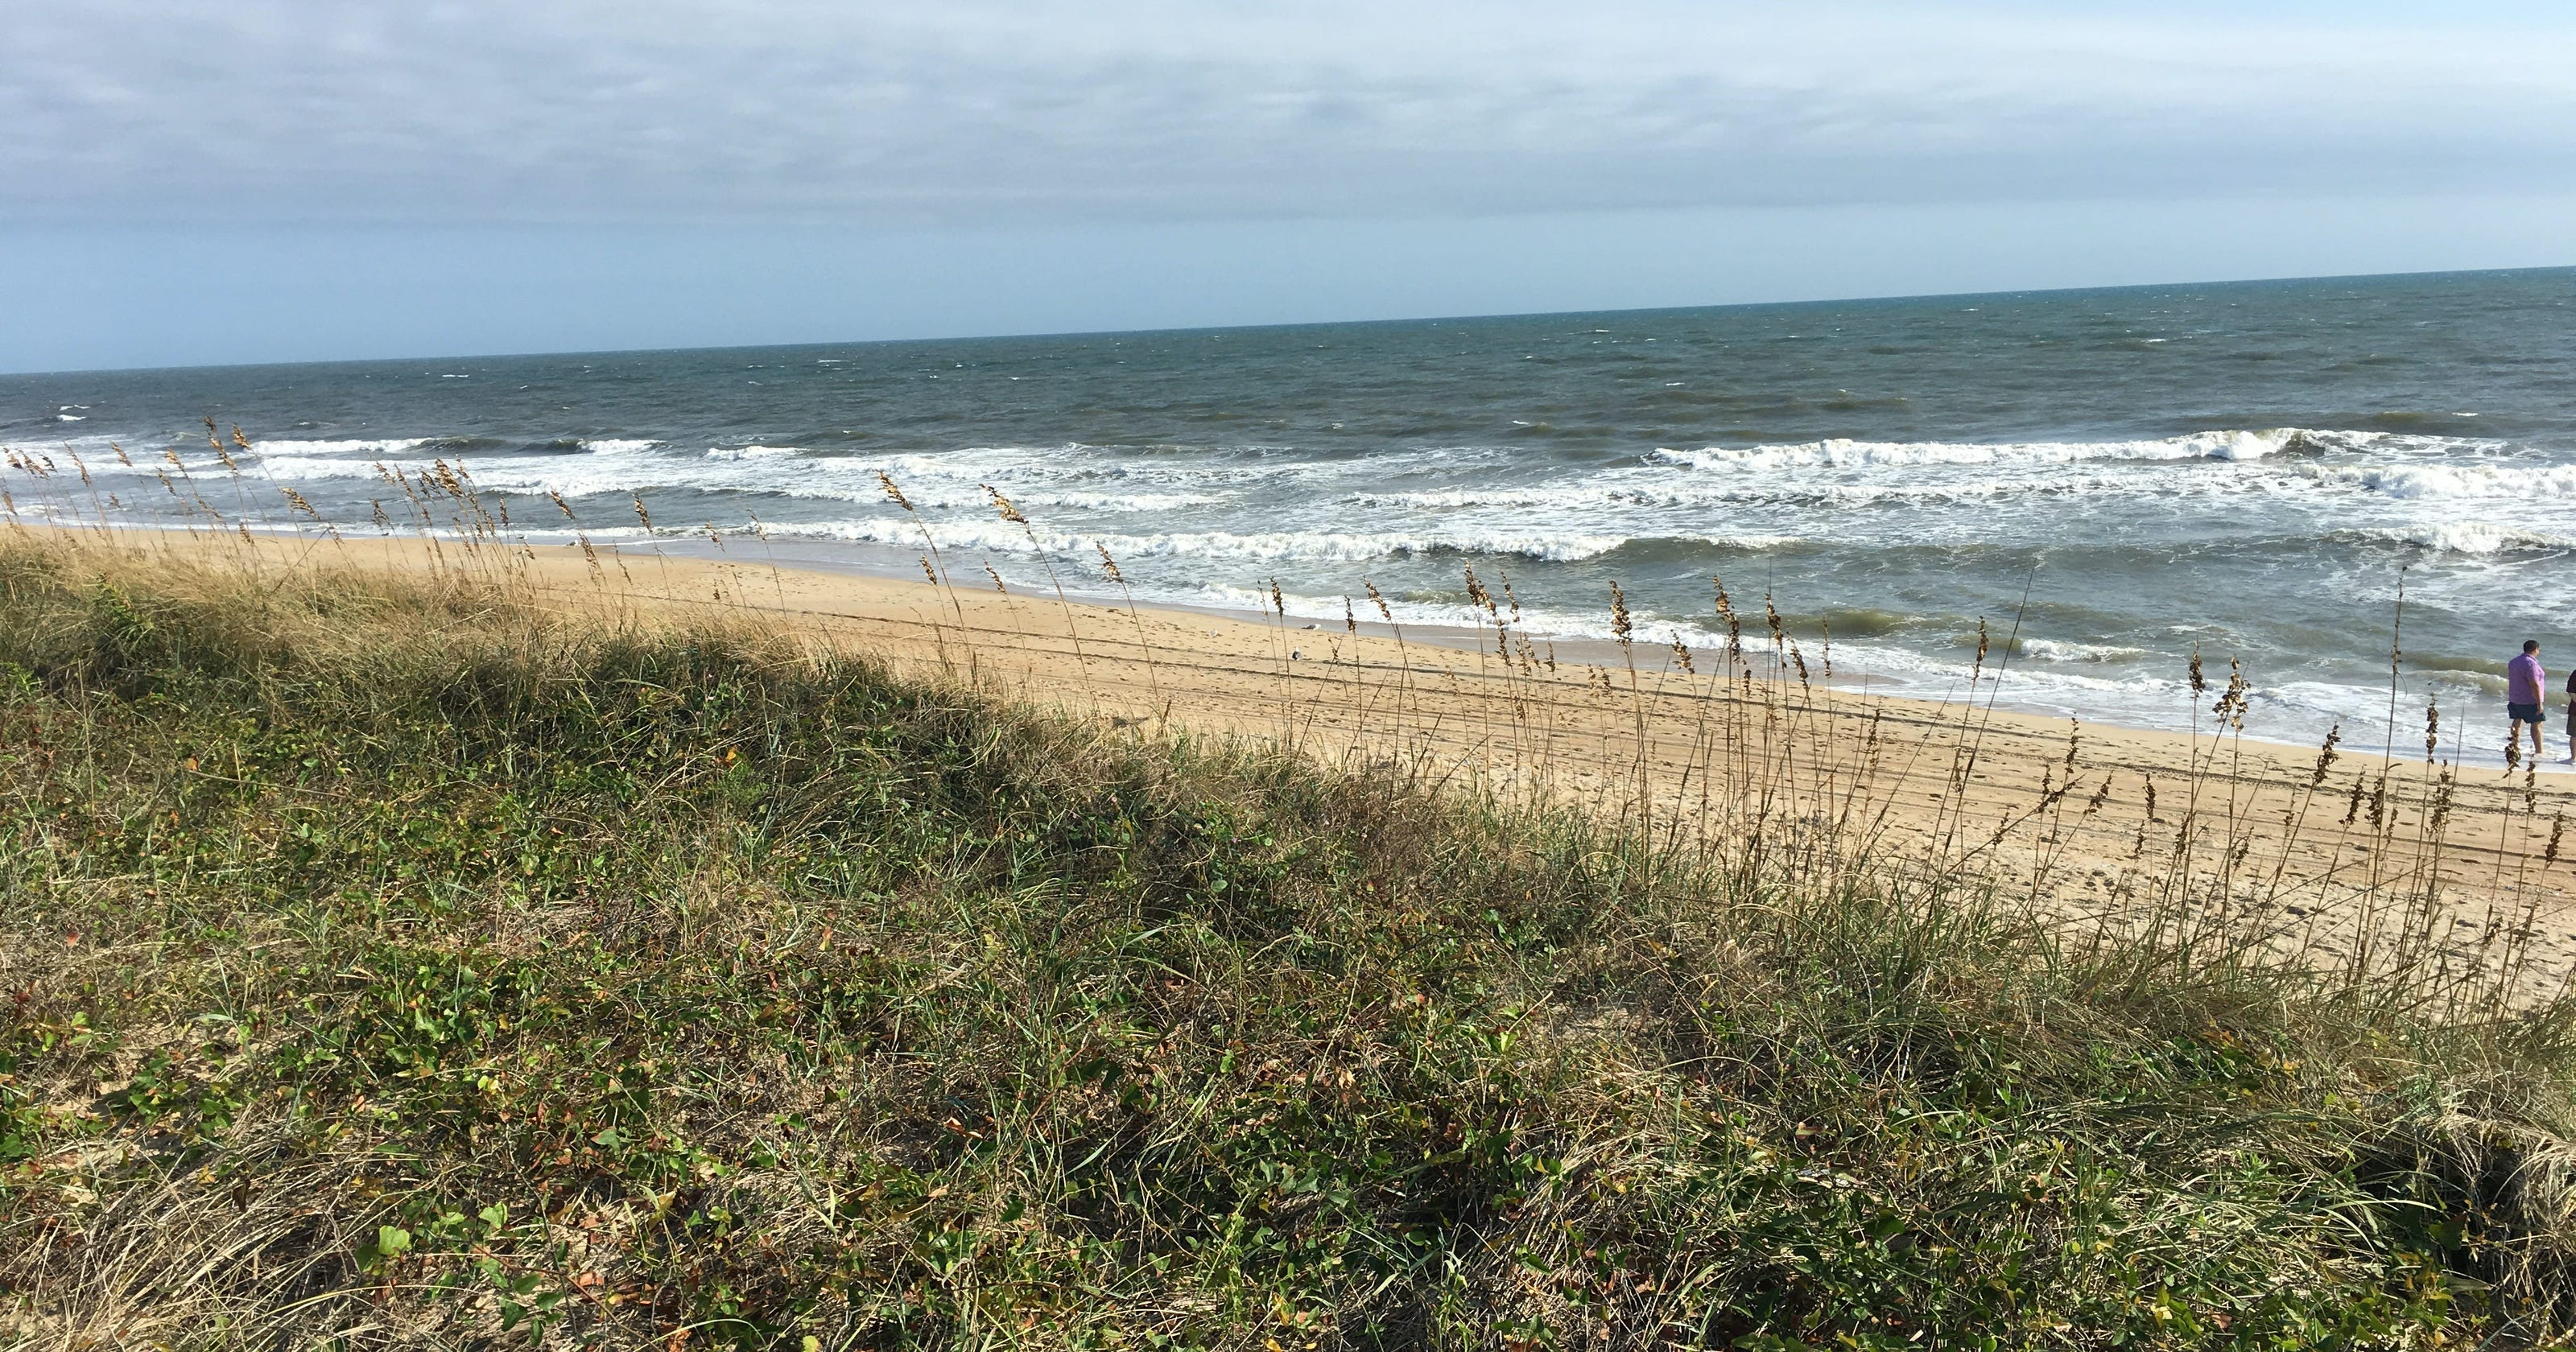 Road trip loop: Explore the beautiful coasts of these four Southern states